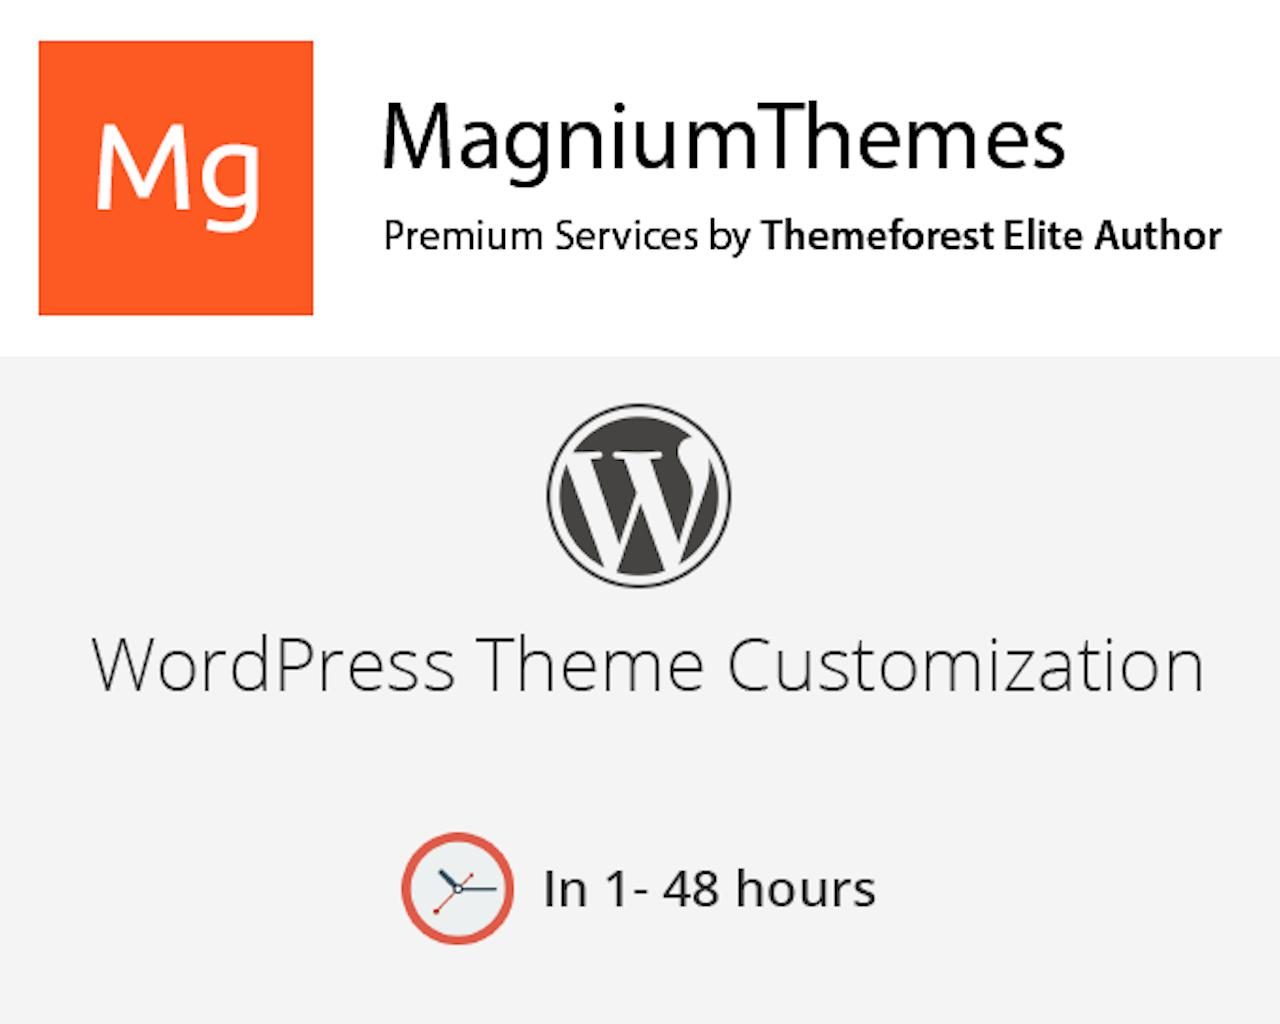 Premium WordPress Theme Customization (colors, features, layouts, etc) by Elite Author Team by dedalx - 105769